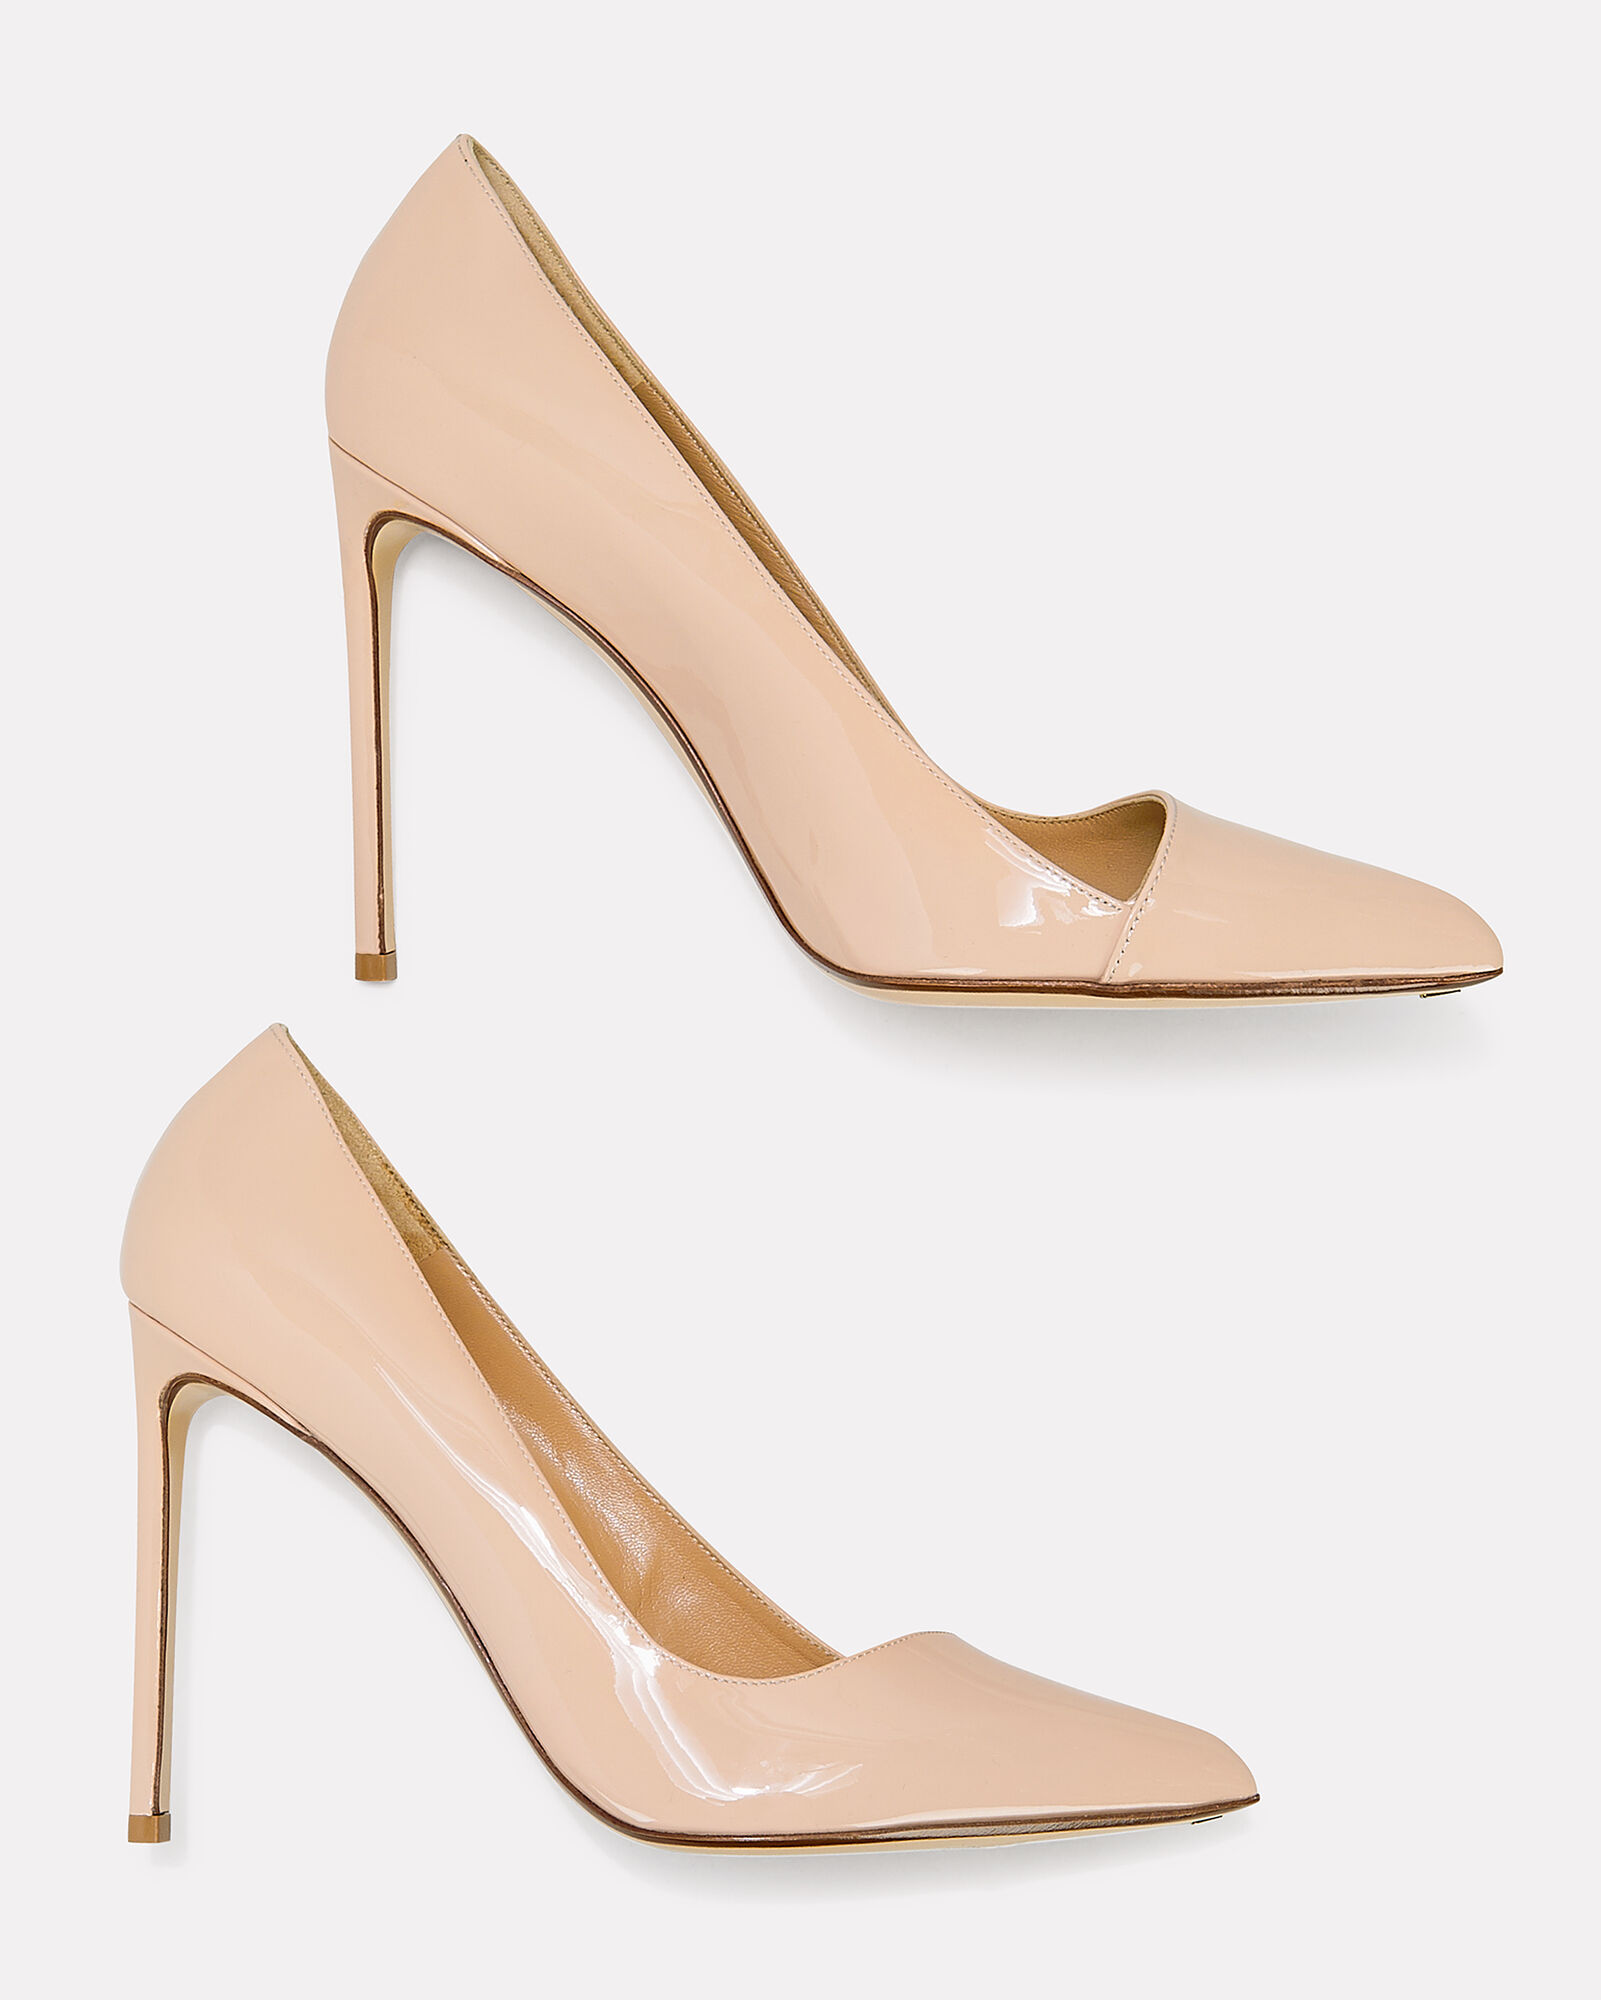 Beige Patent Leather Pumps, NUDE, hi-res